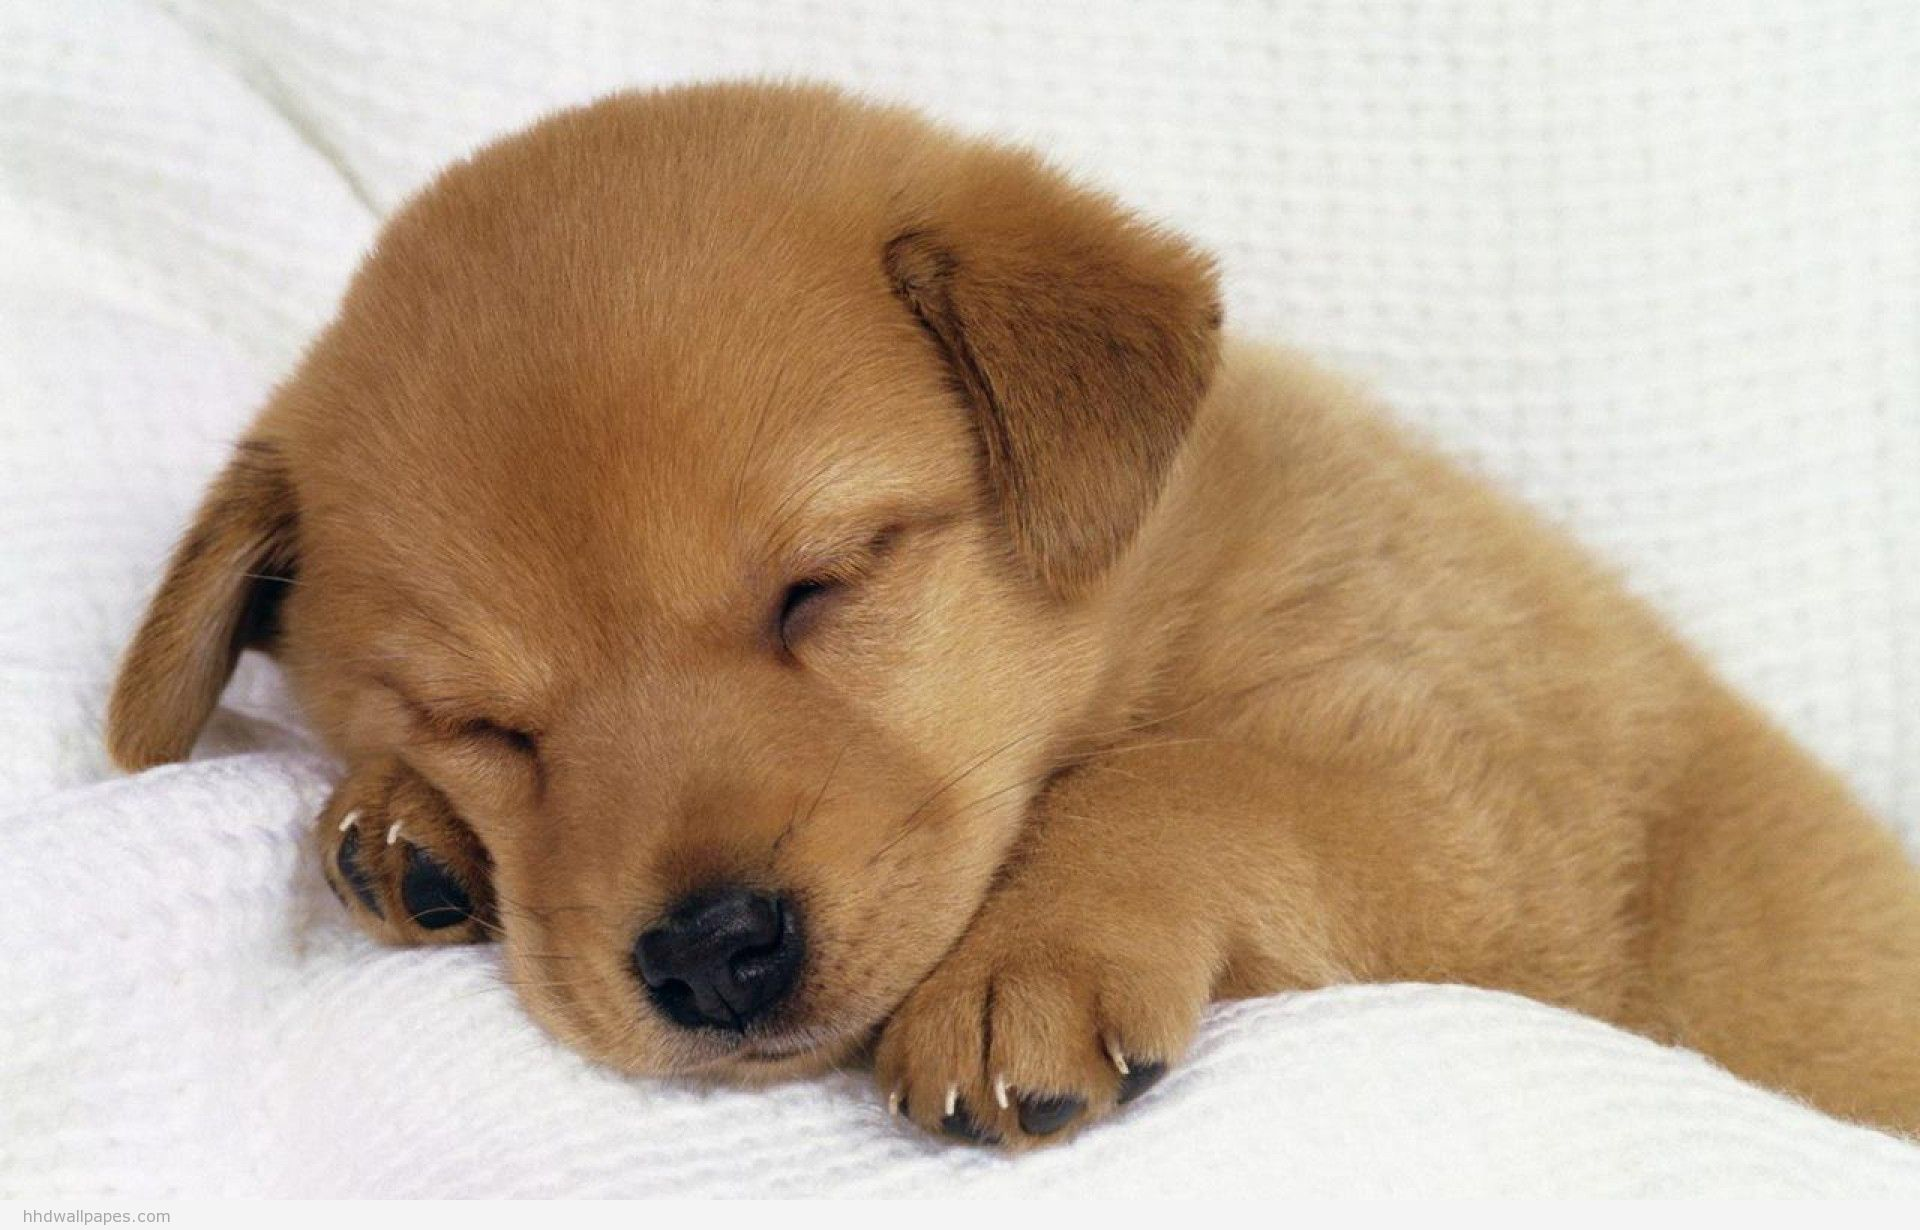 Cute Dog Wallpapers 8694 Hd Wallpapers in Animals   Imagescicom 1920x1230